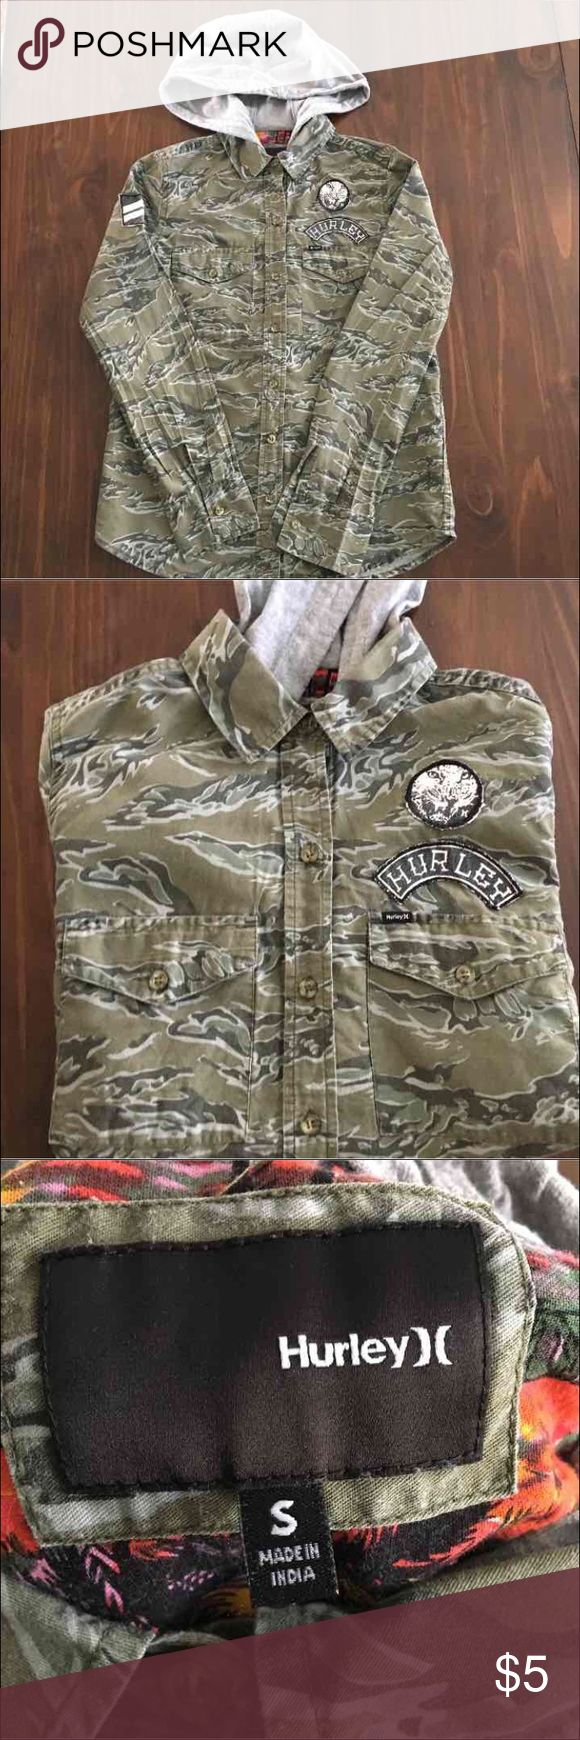 Camo shirt Button up camo shirt with hood. Has patches on front and sleeve. No damage. Size is a female S but I think this can be a unisex shirt. Hurley Tops Button Down Shirts